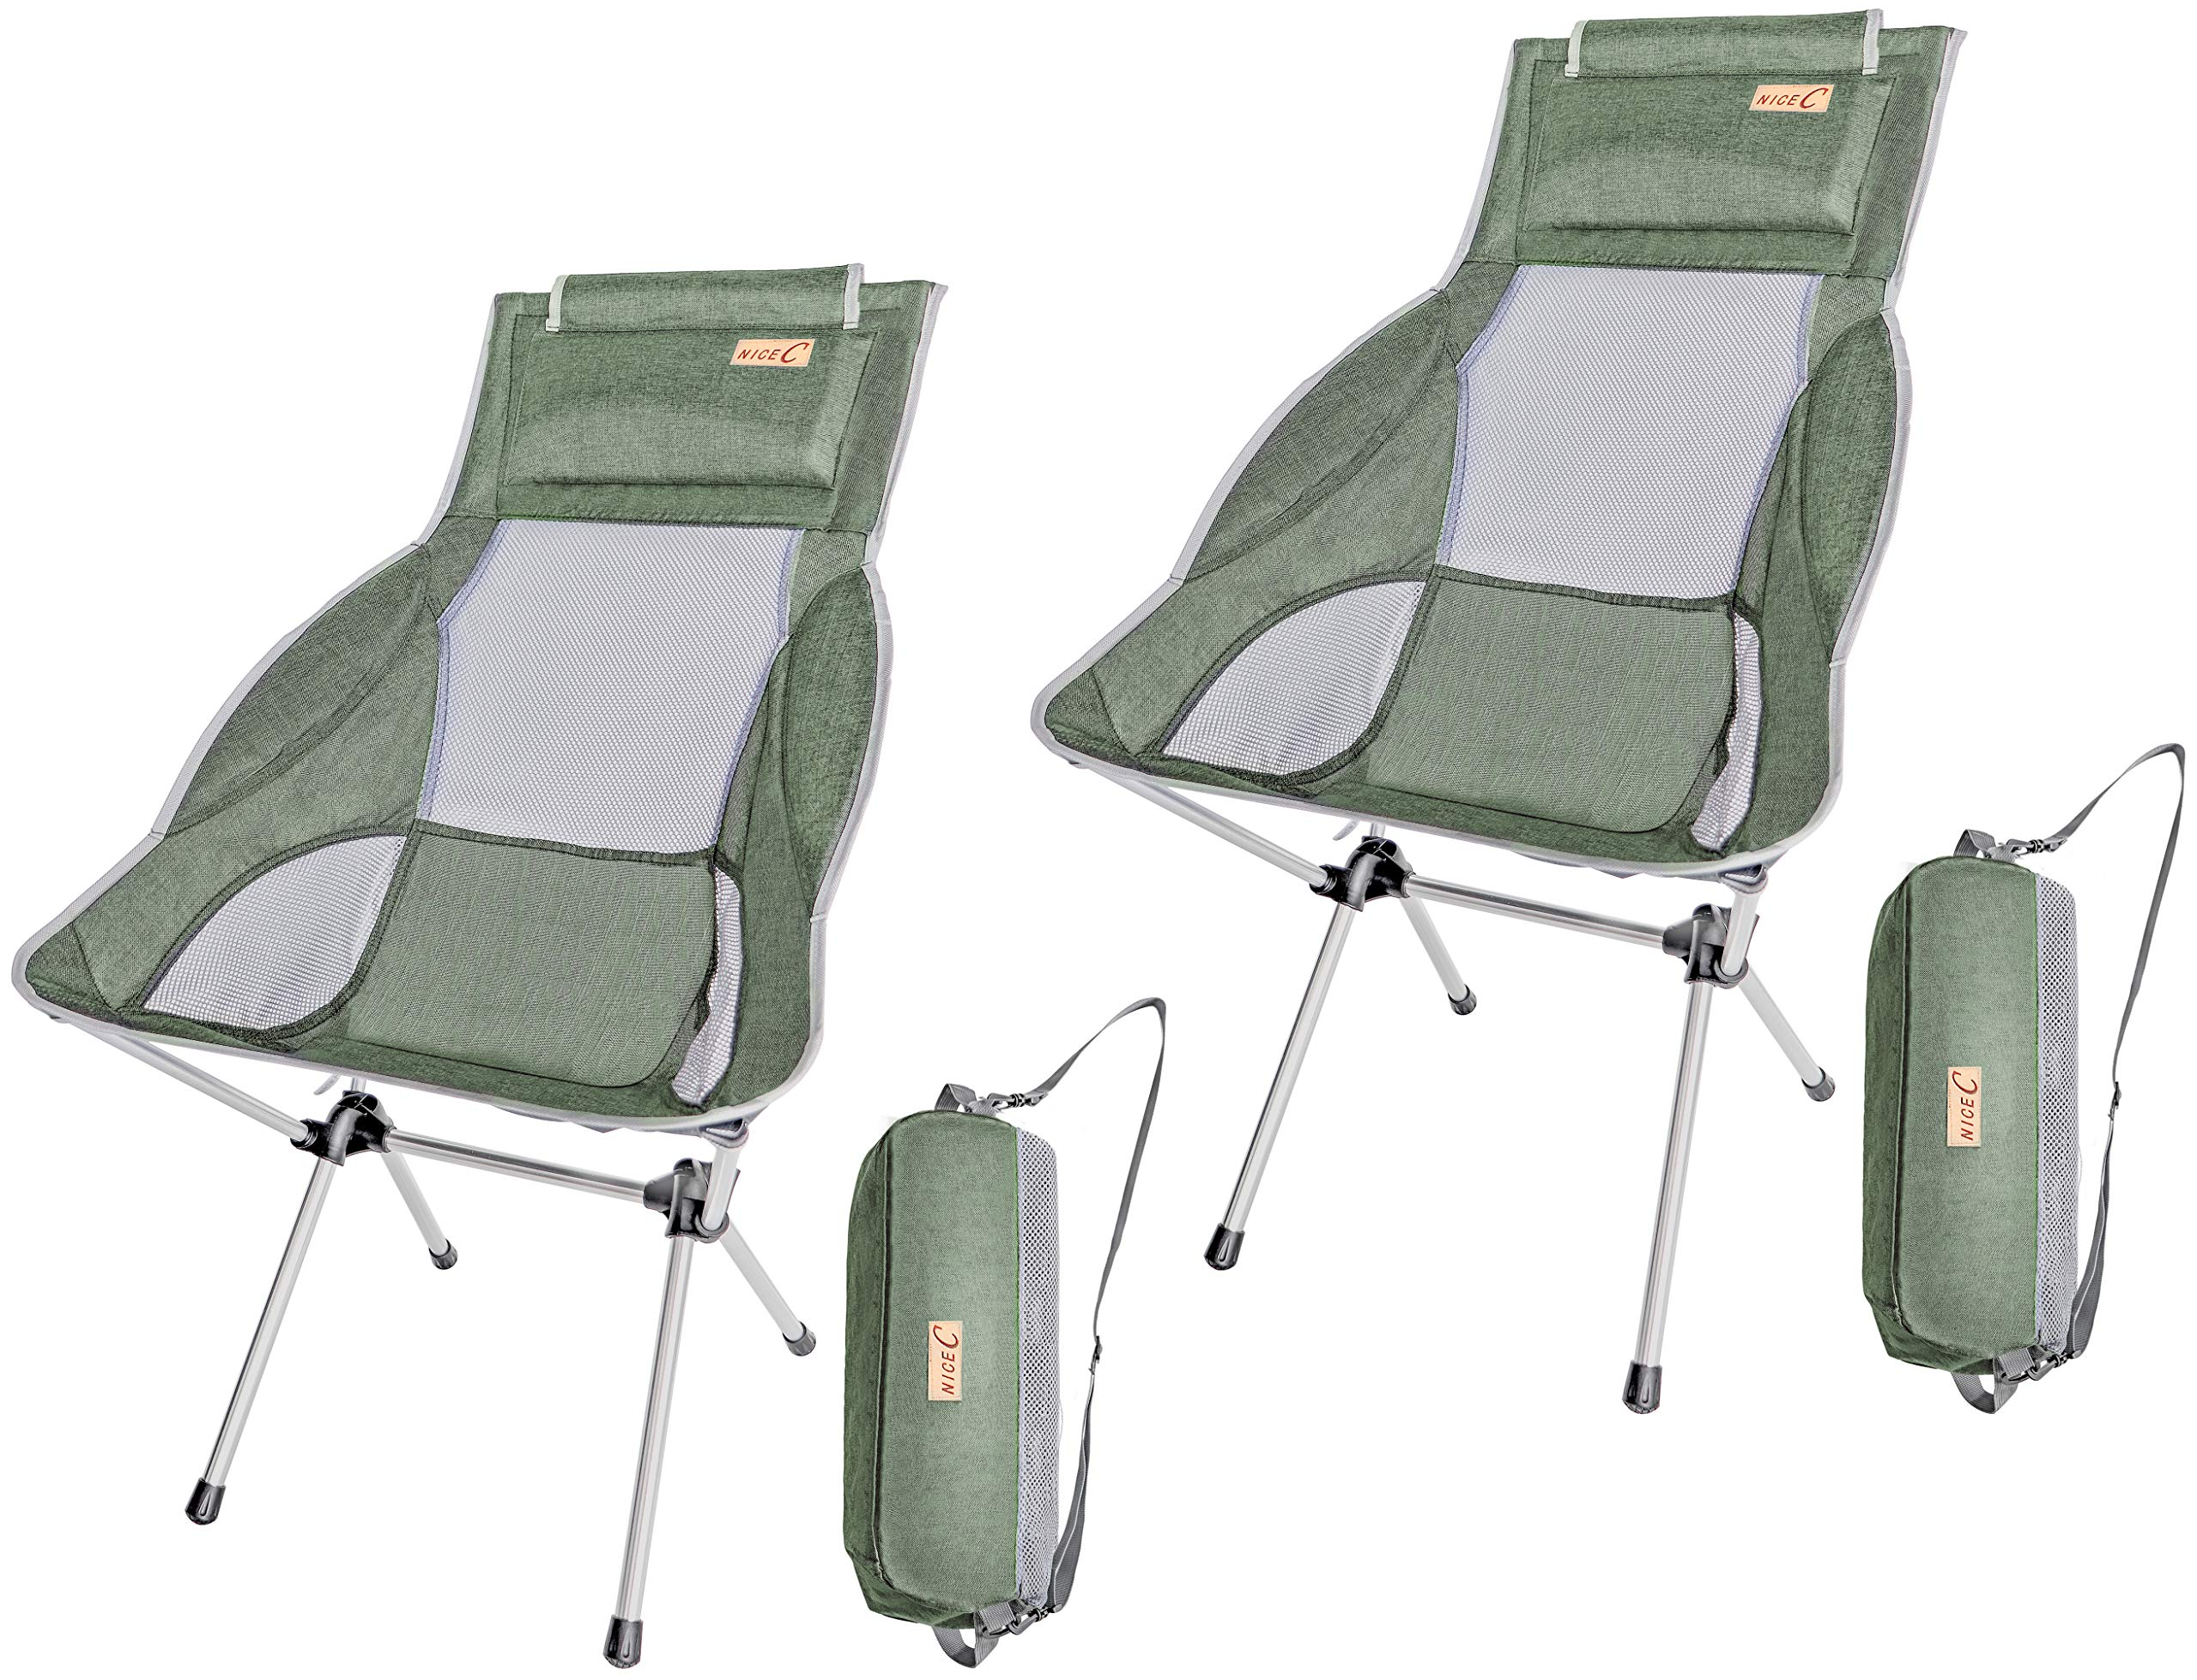 Nice C Ultralight High Back Folding Camping Chair, with Headrest, Outdoor, Backpacking Compact & Heavy Duty Outdoor, Camping, BBQ, Beach, Travel, Picnic, Festival with Carry Bag (2 Pack of Green